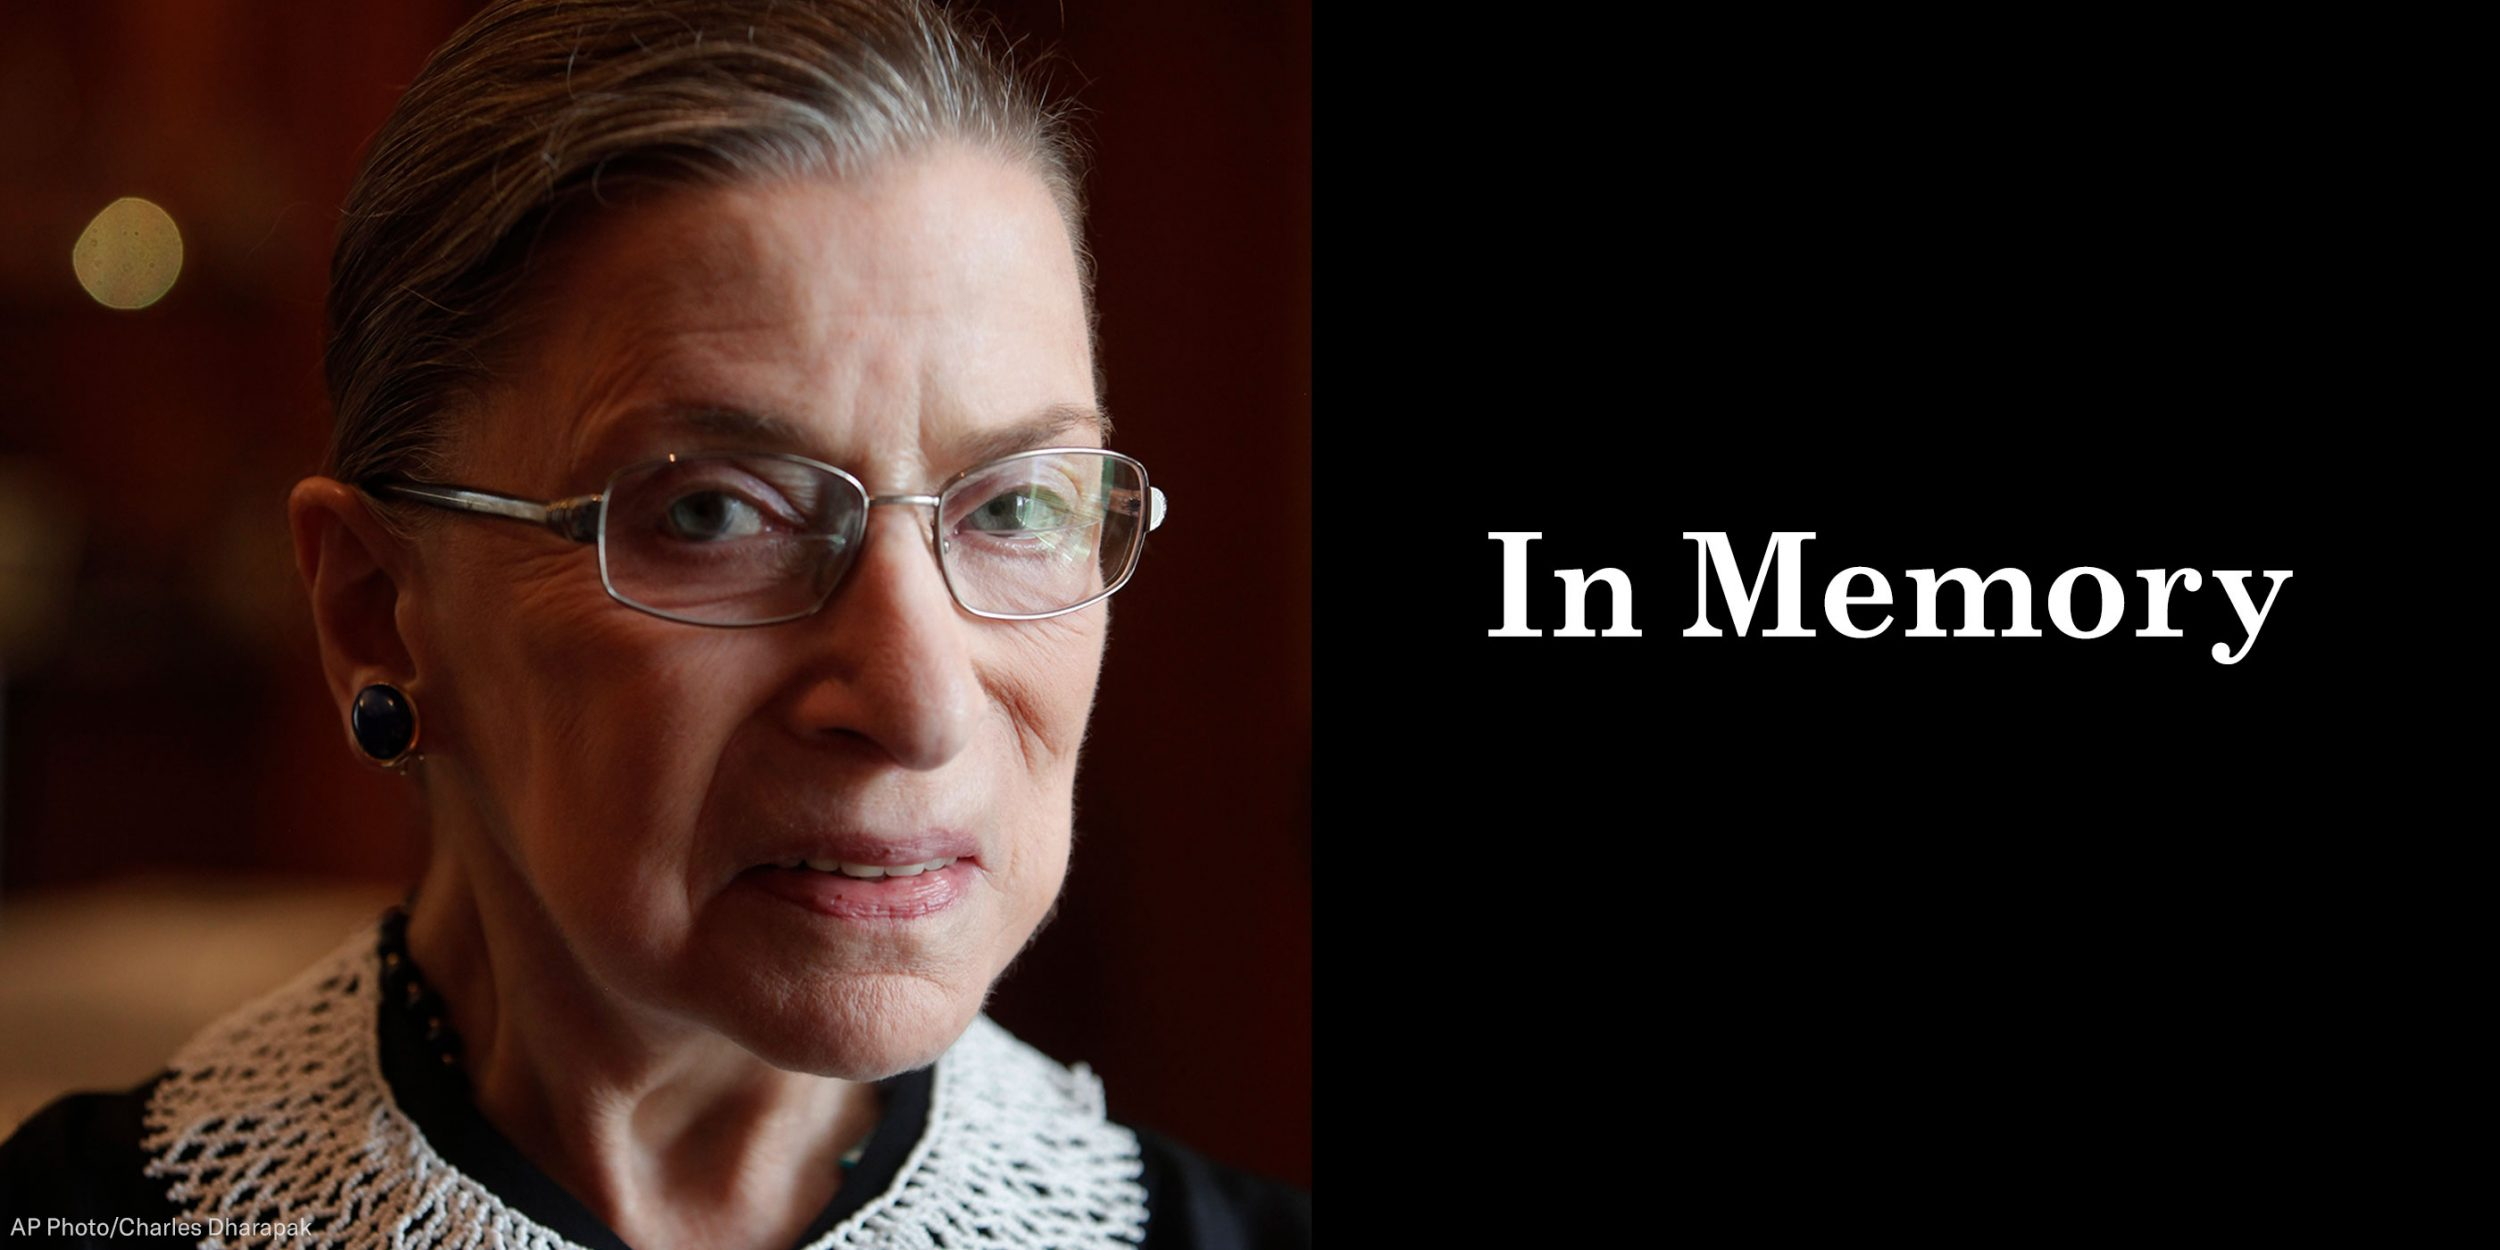 Memorial Ceremonies For Justice Ruth Bader Ginsburg